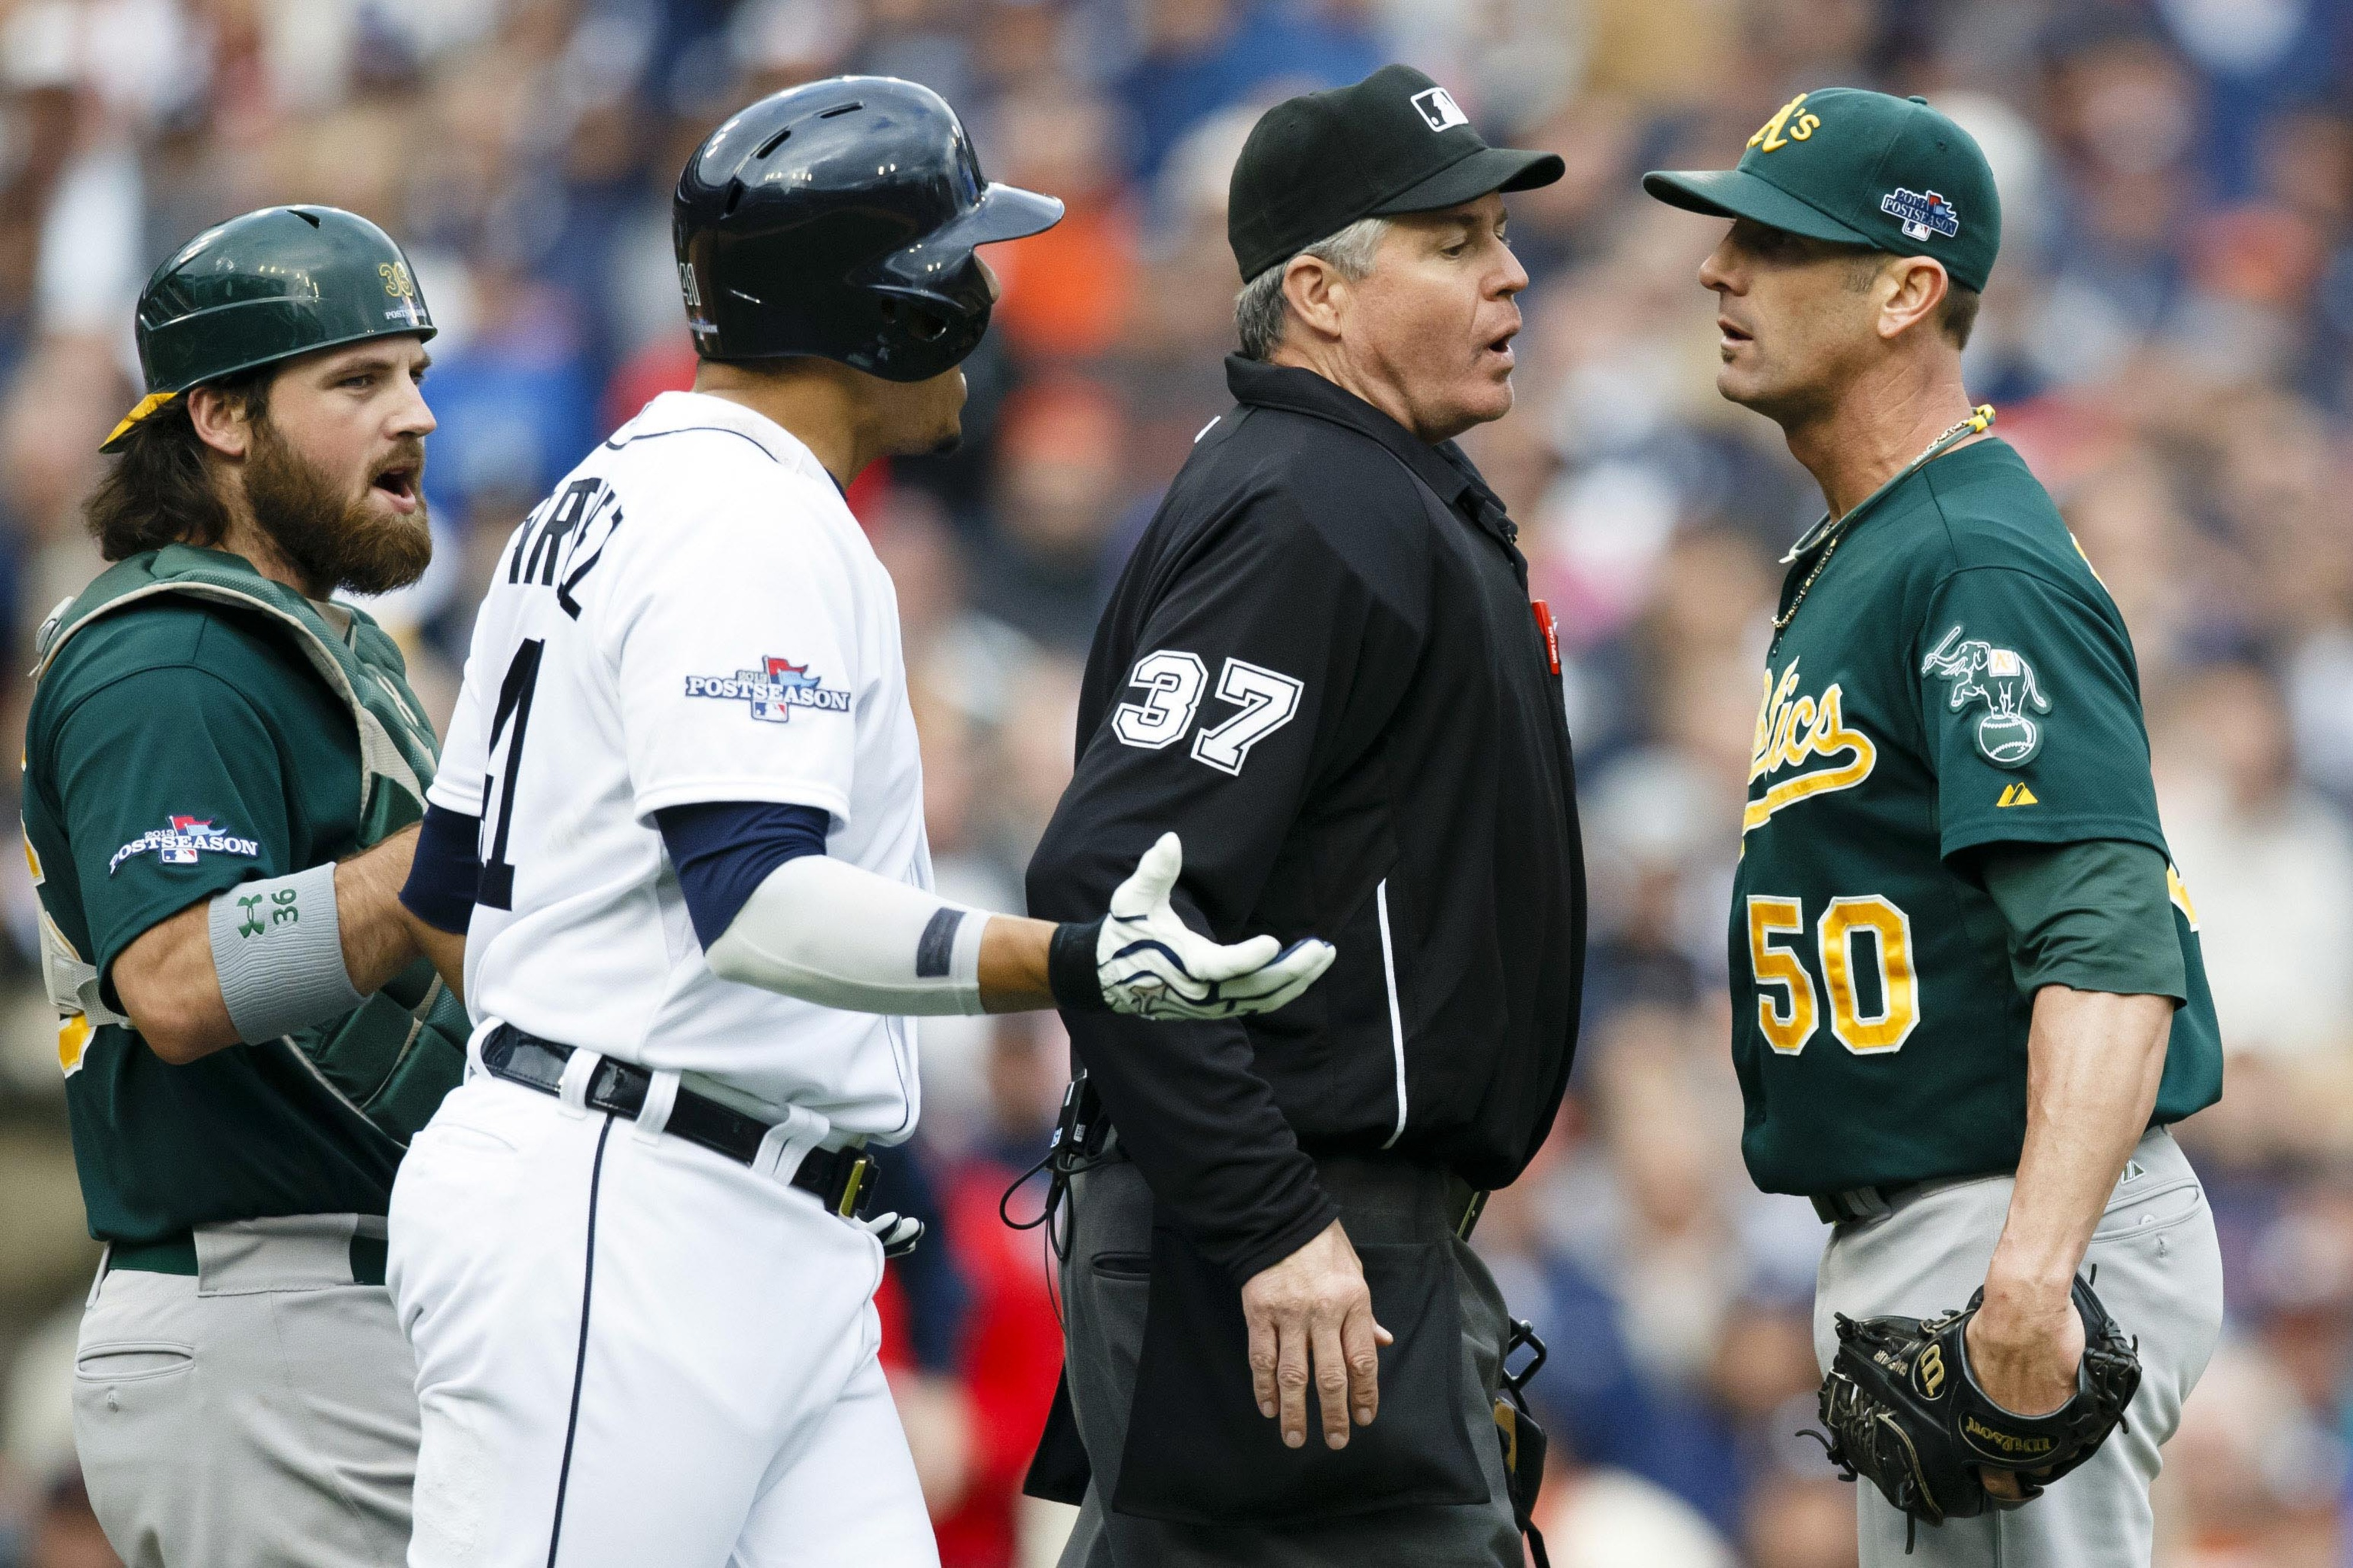 Keep that chip on your shoulder today, A's.